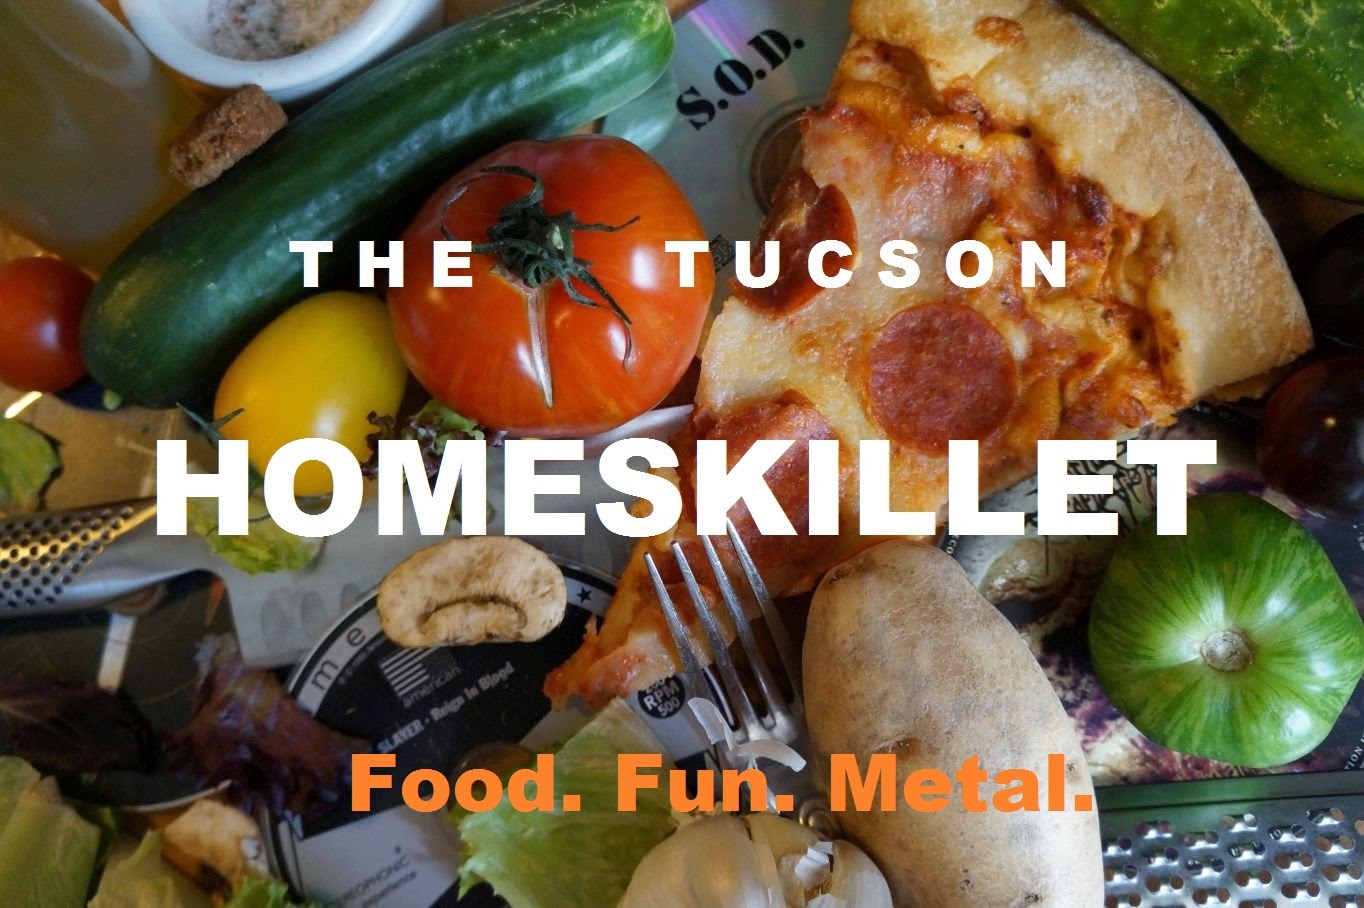 The Tucson Homeskillet